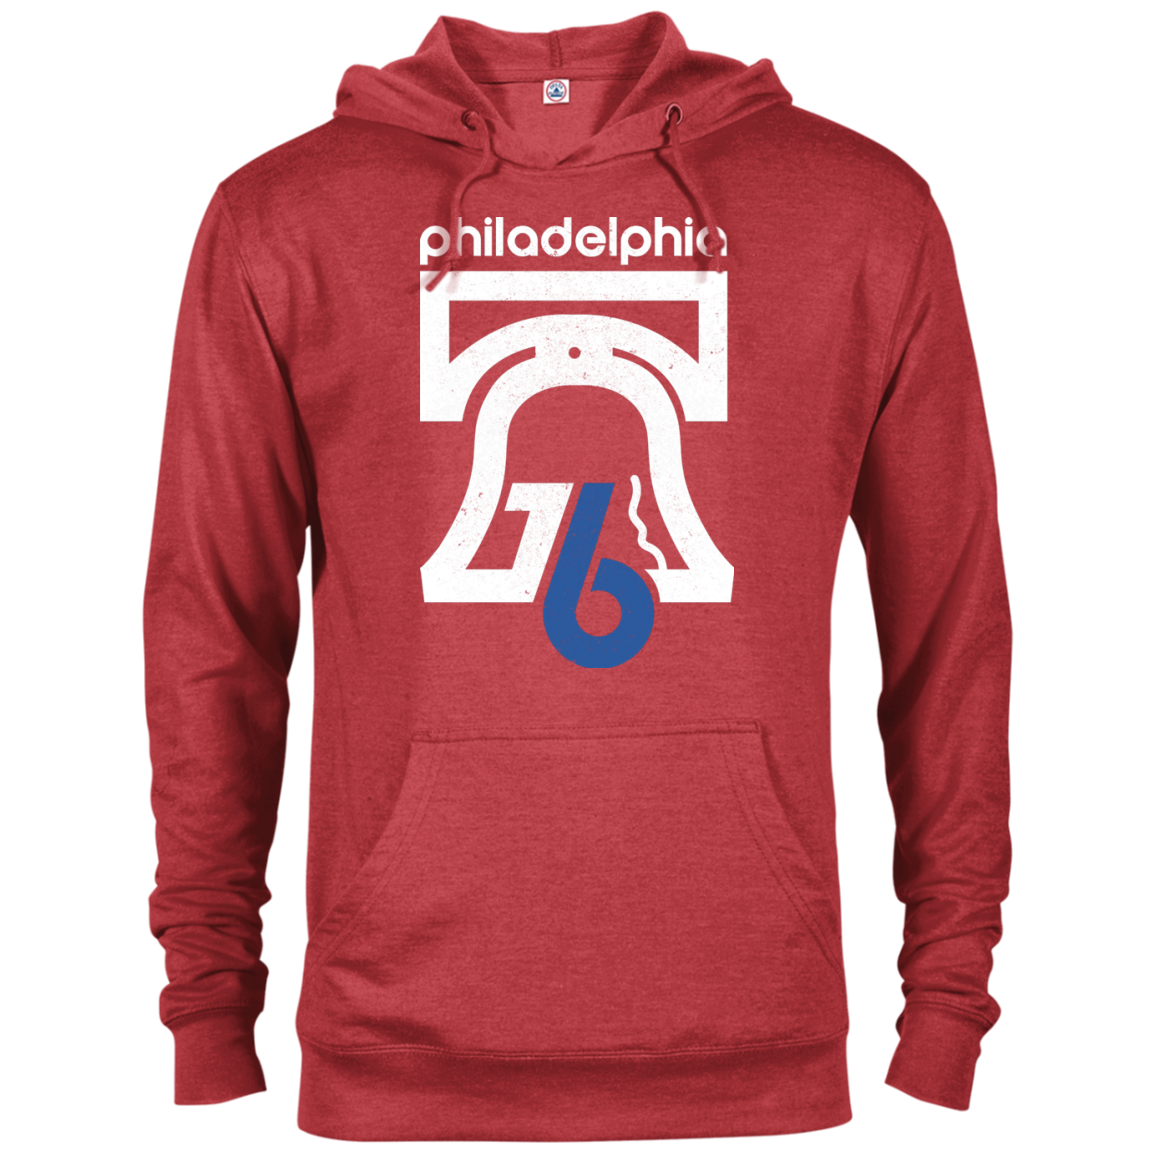 Red Philly 1976 Inspired French Terry Hoodie - Generation T